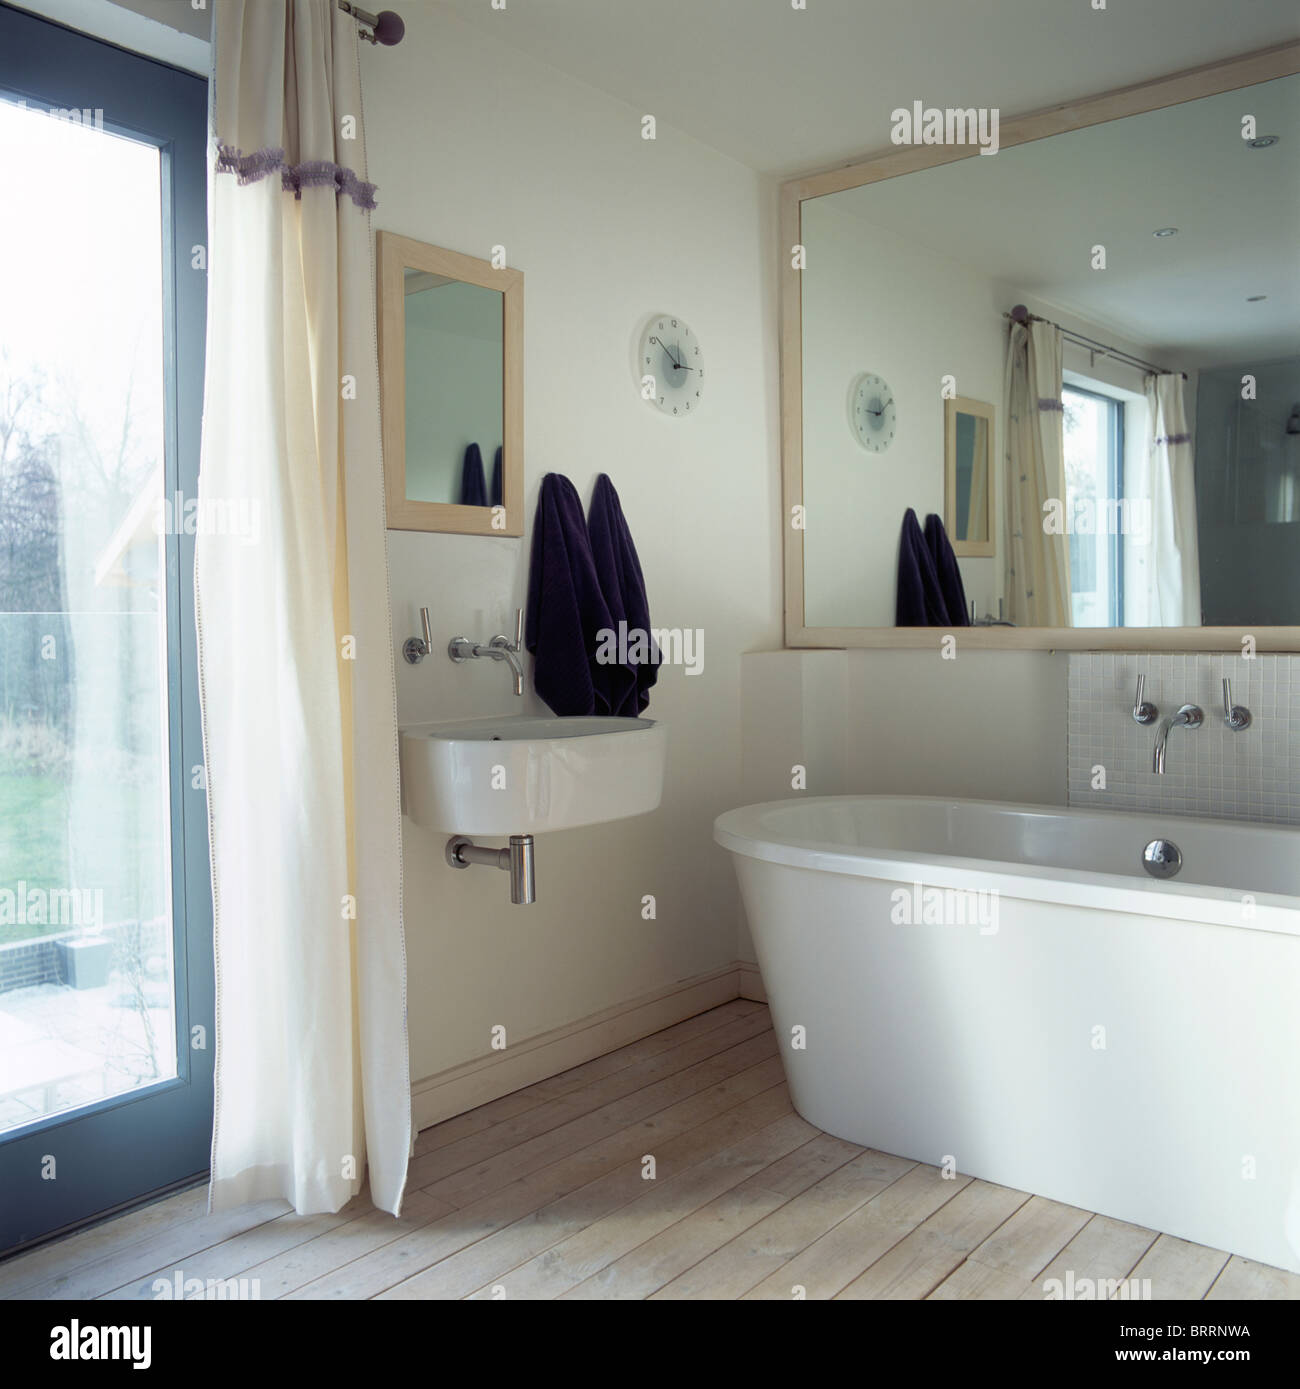 Bathroom With Mirrors Large Mirror Above Modern Bath In Small Modern Bathroom With Stock